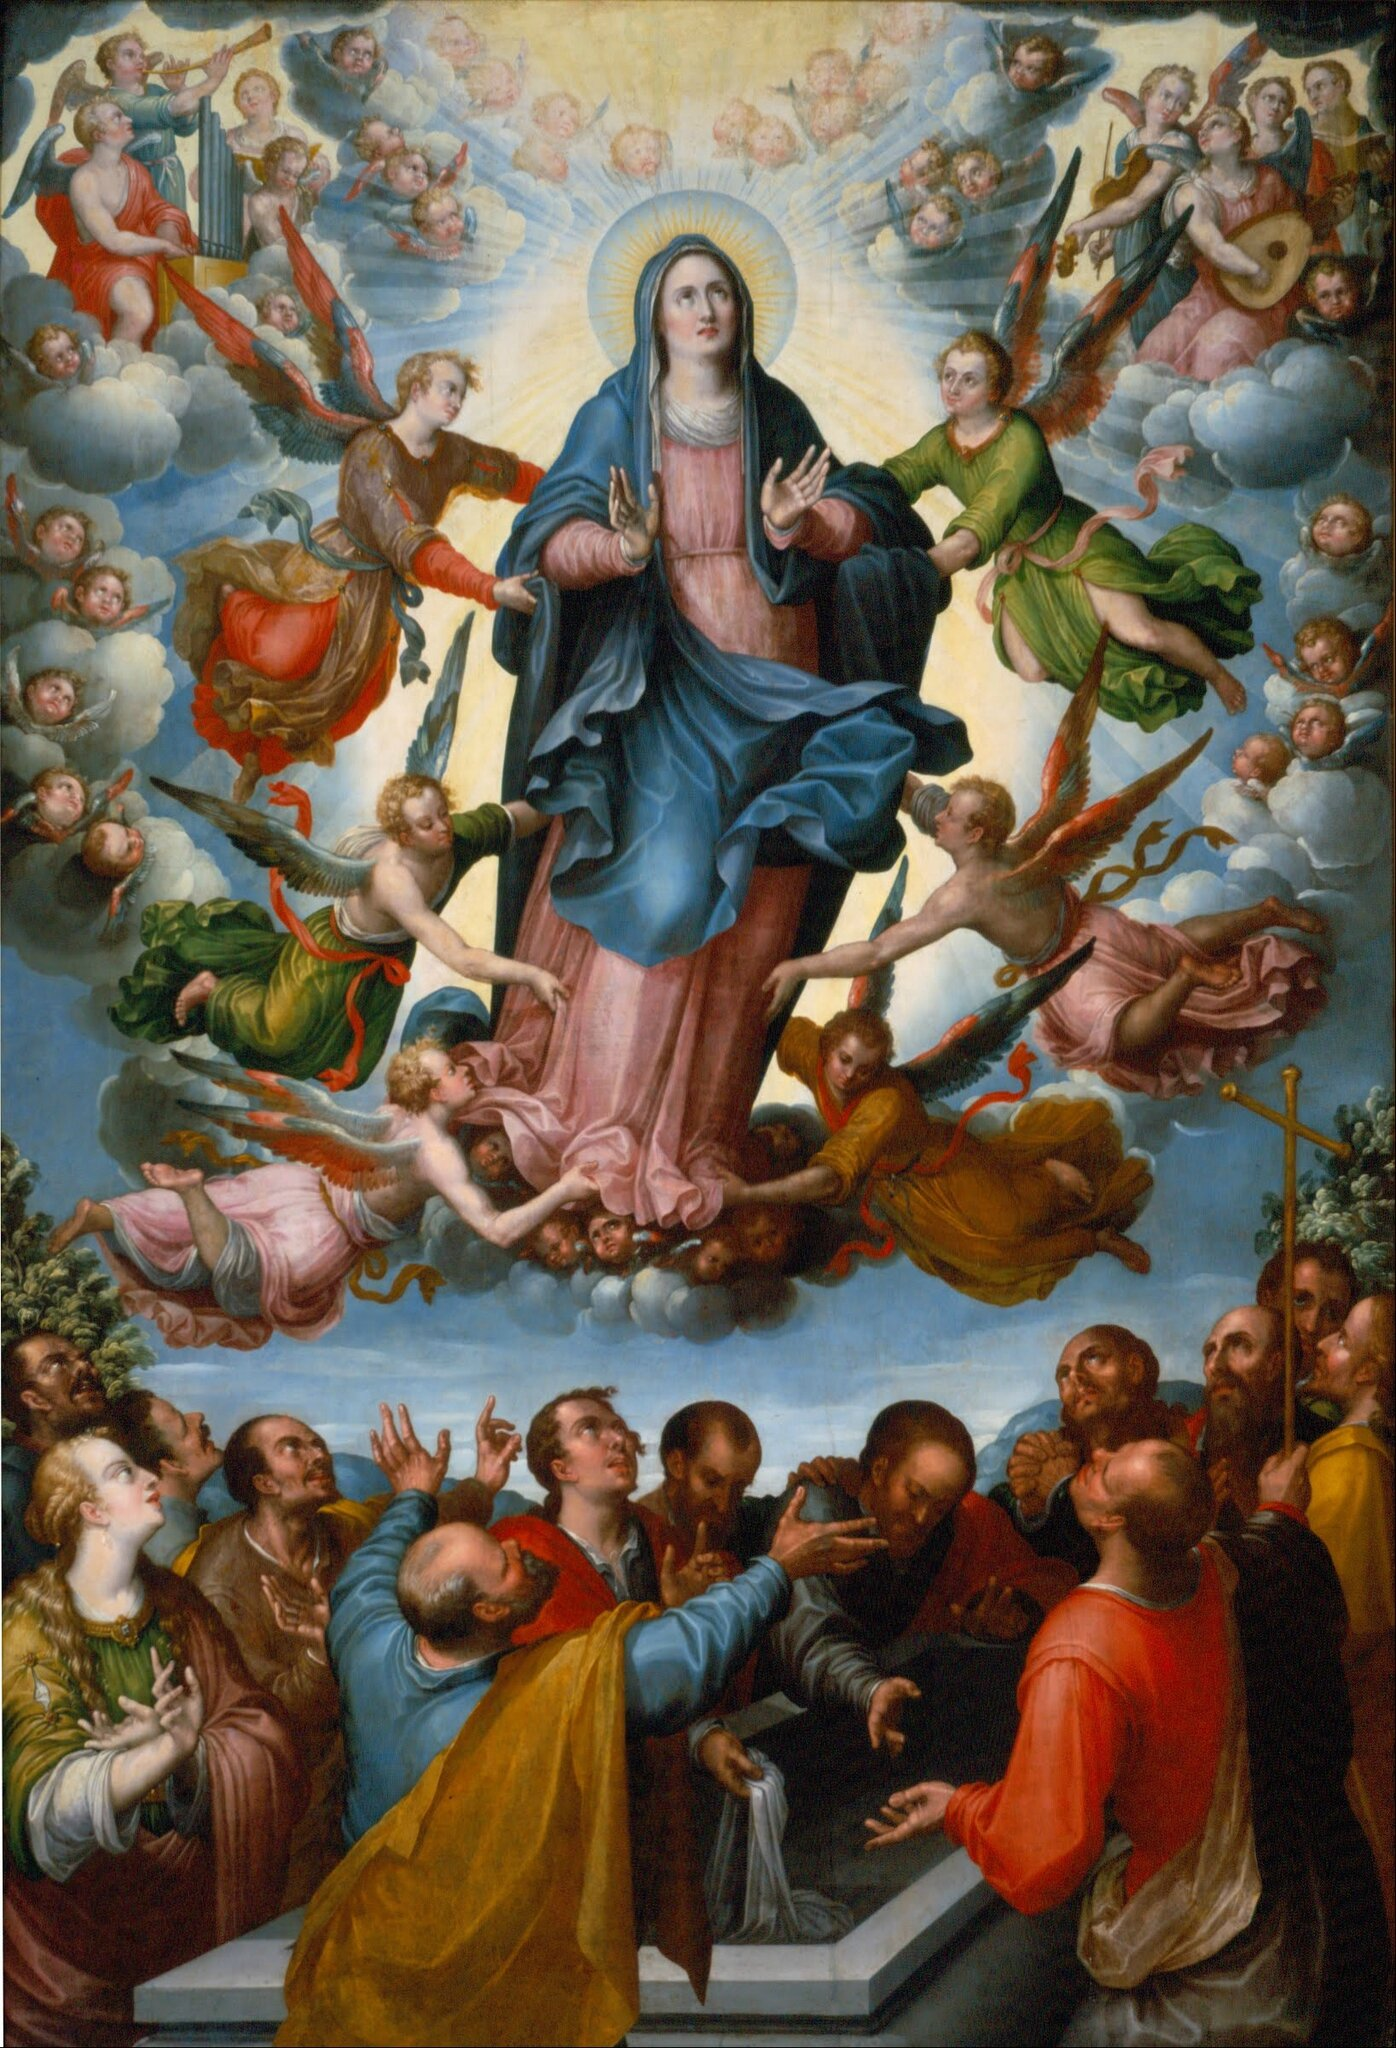 Alonso_López_de_Herrera_-_The_Assumption_of_the_Virgin_-_Google_Art_Project (1)